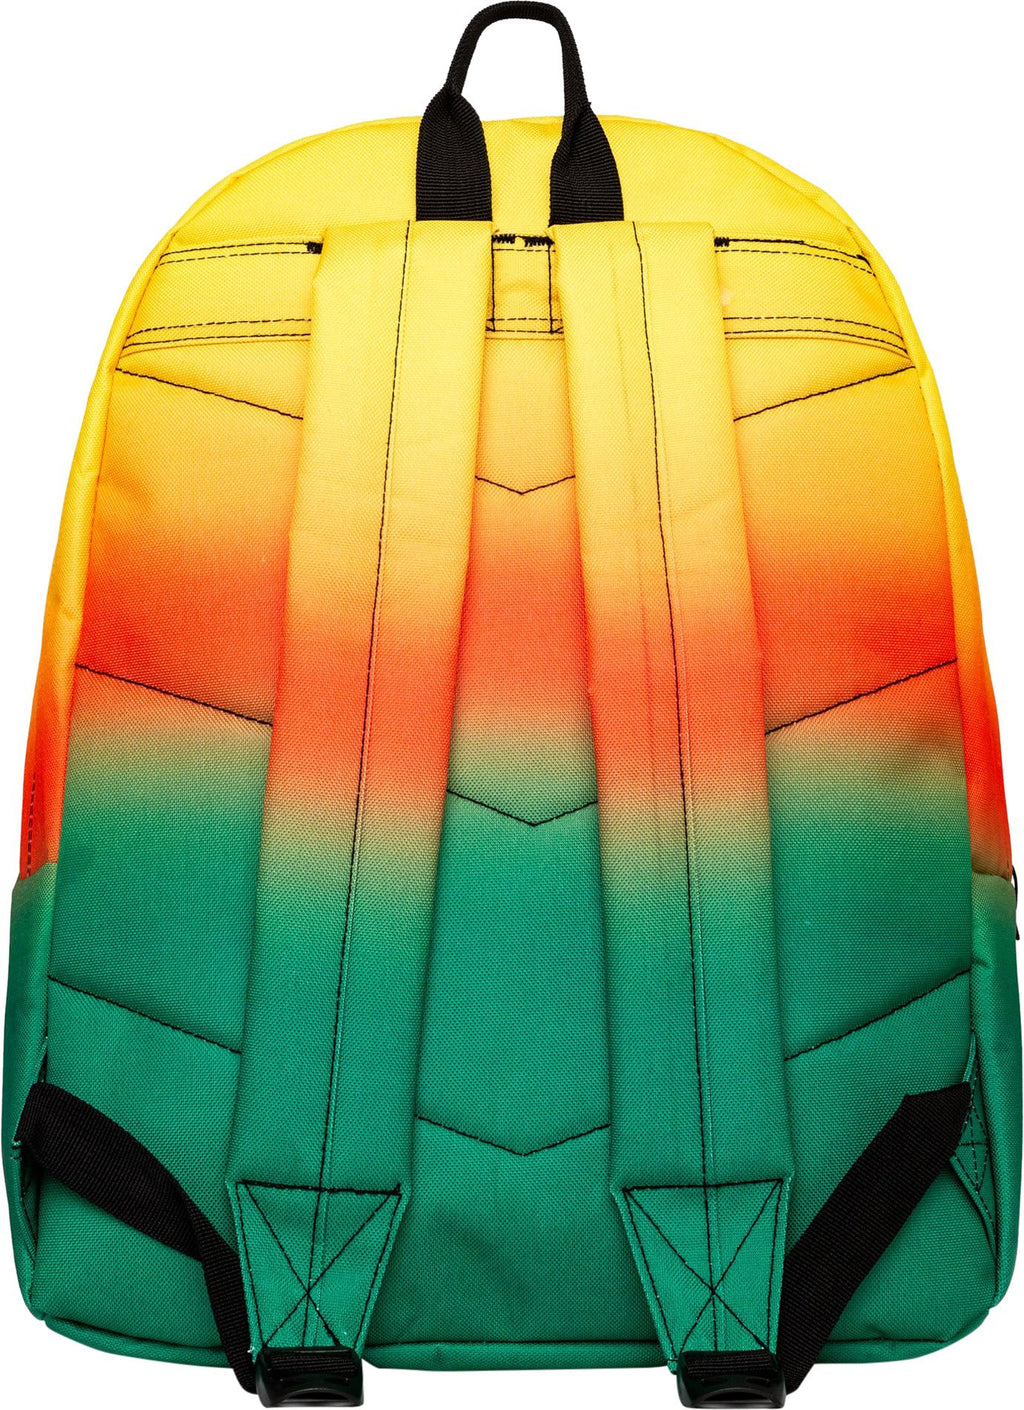 Hype Caribbean Sunrise Backpack Bag Multi